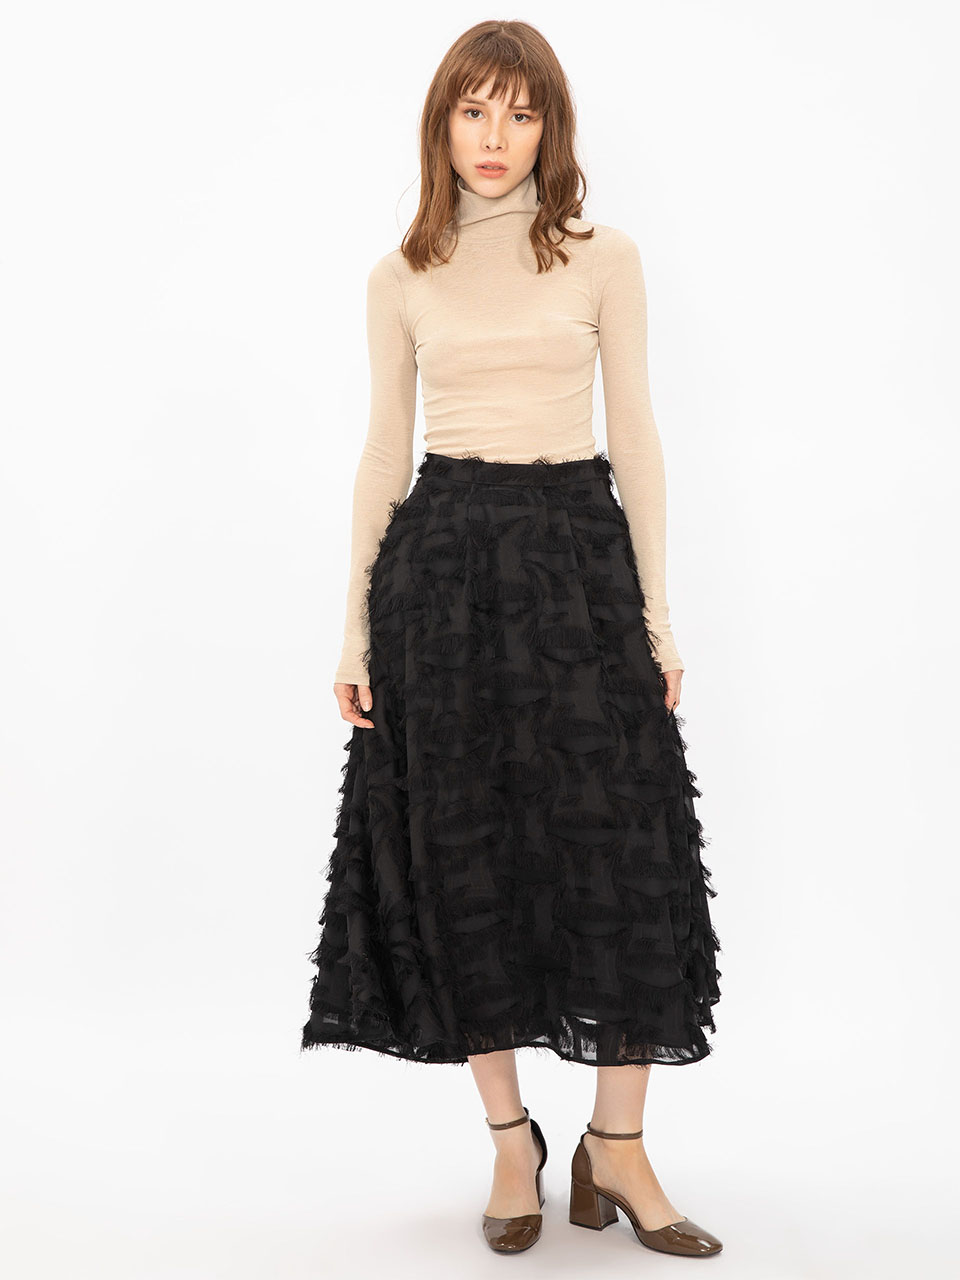 Tassel Detailed Bell Skirt